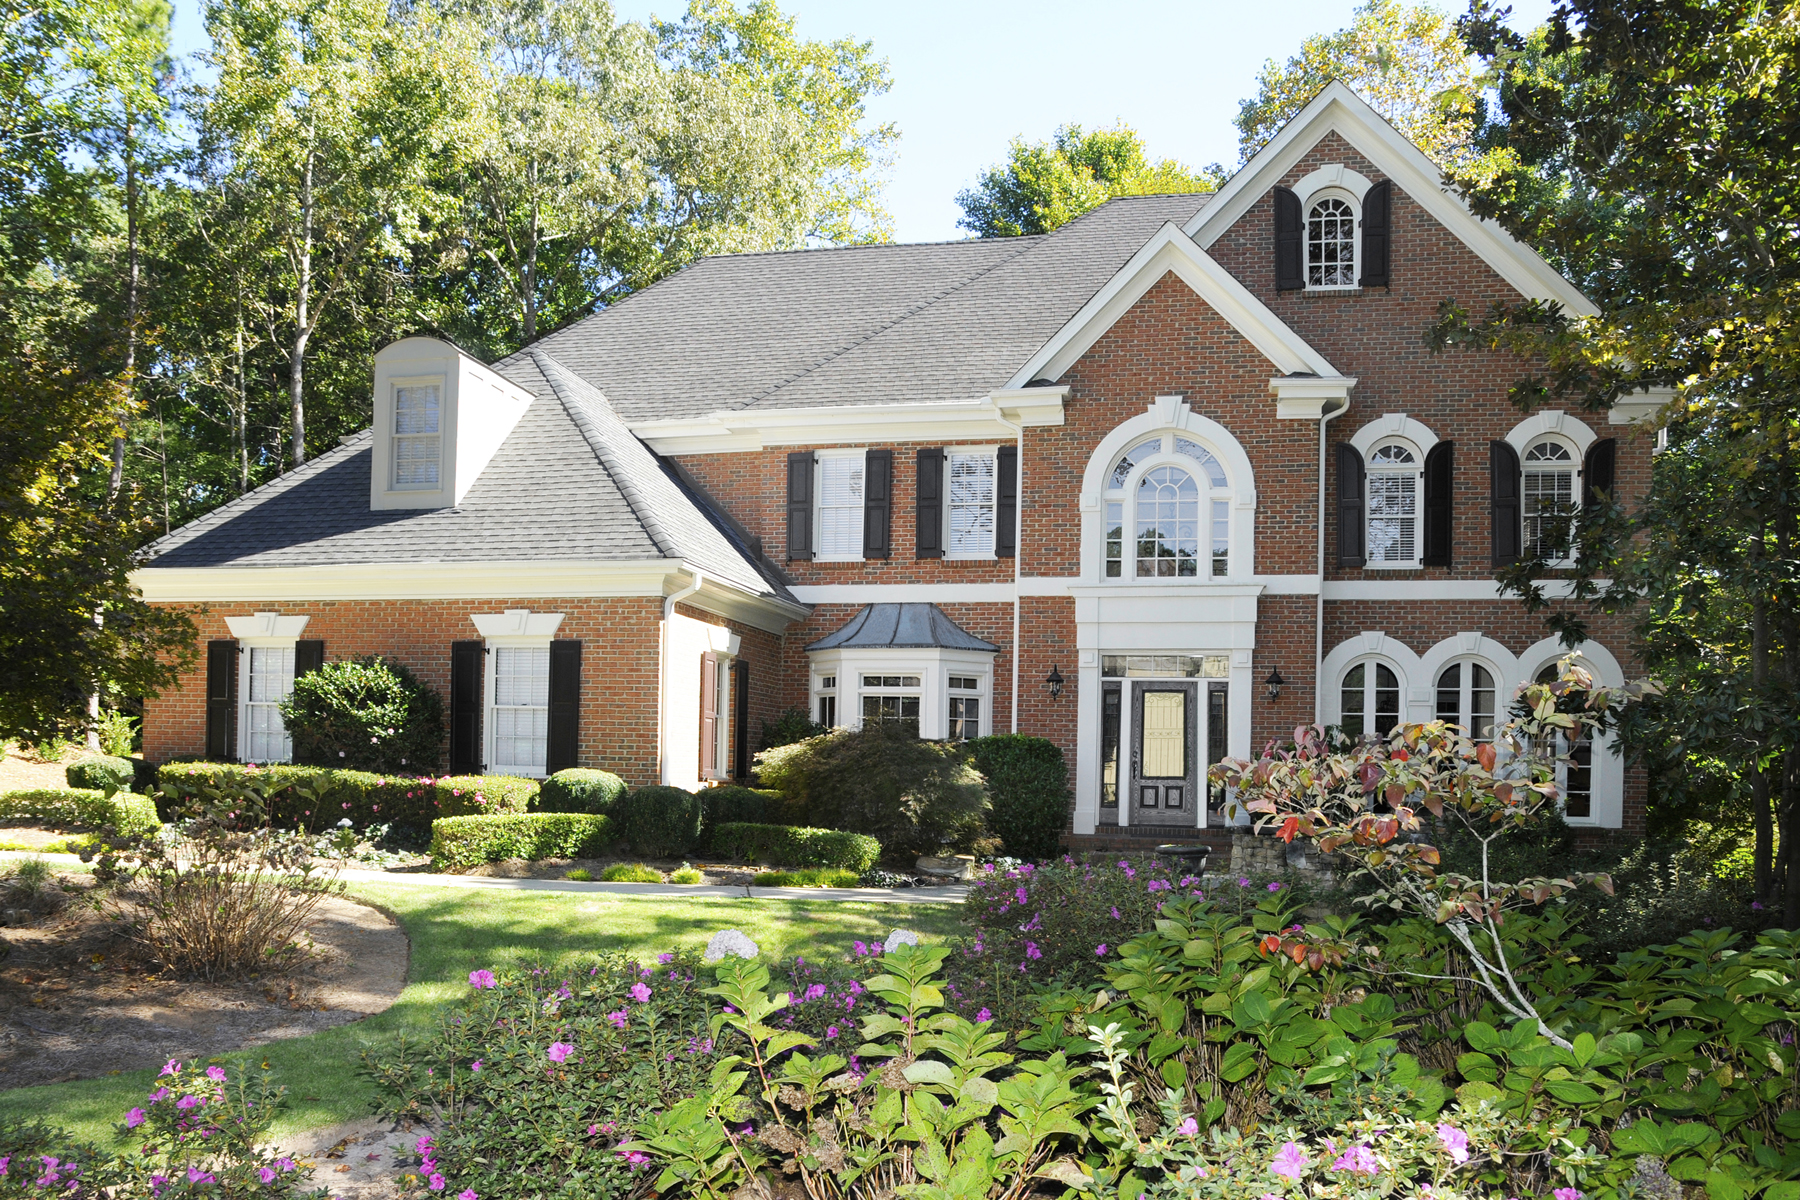 Single Family Home for Sale at Beautiful Brick Home In St Ives 708 Henley Fields Circle Johns Creek, Georgia 30097 United States